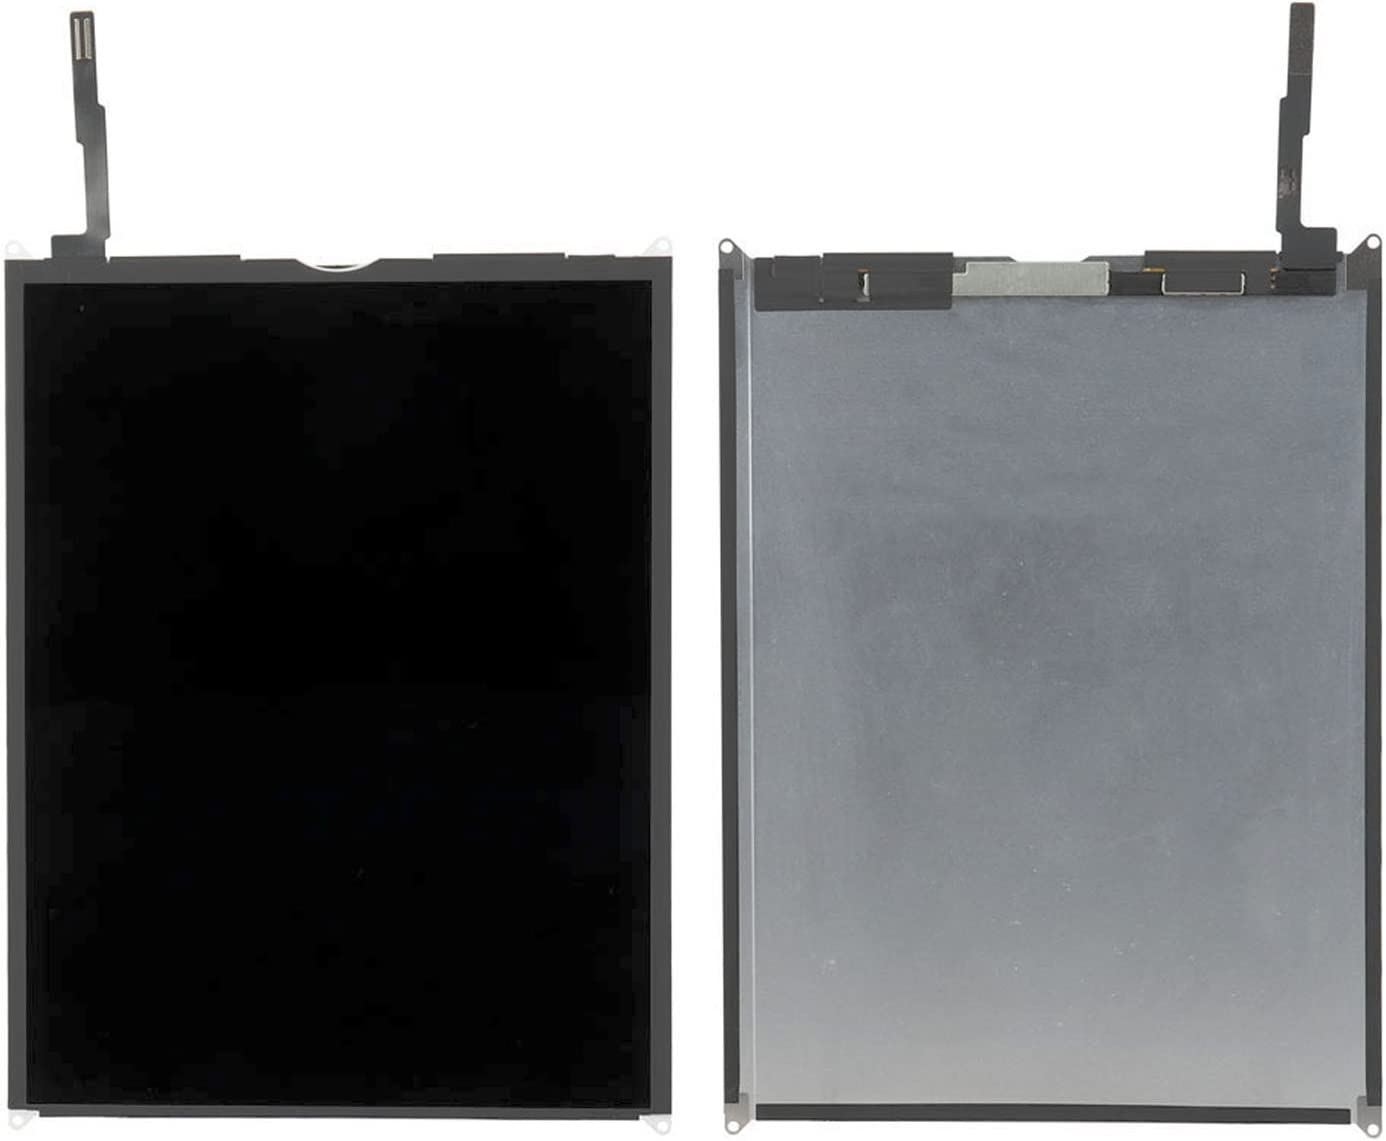 New Replacement LCD Display Screen for iPad 5 Model A1474 A1475 Free Tooling Kit